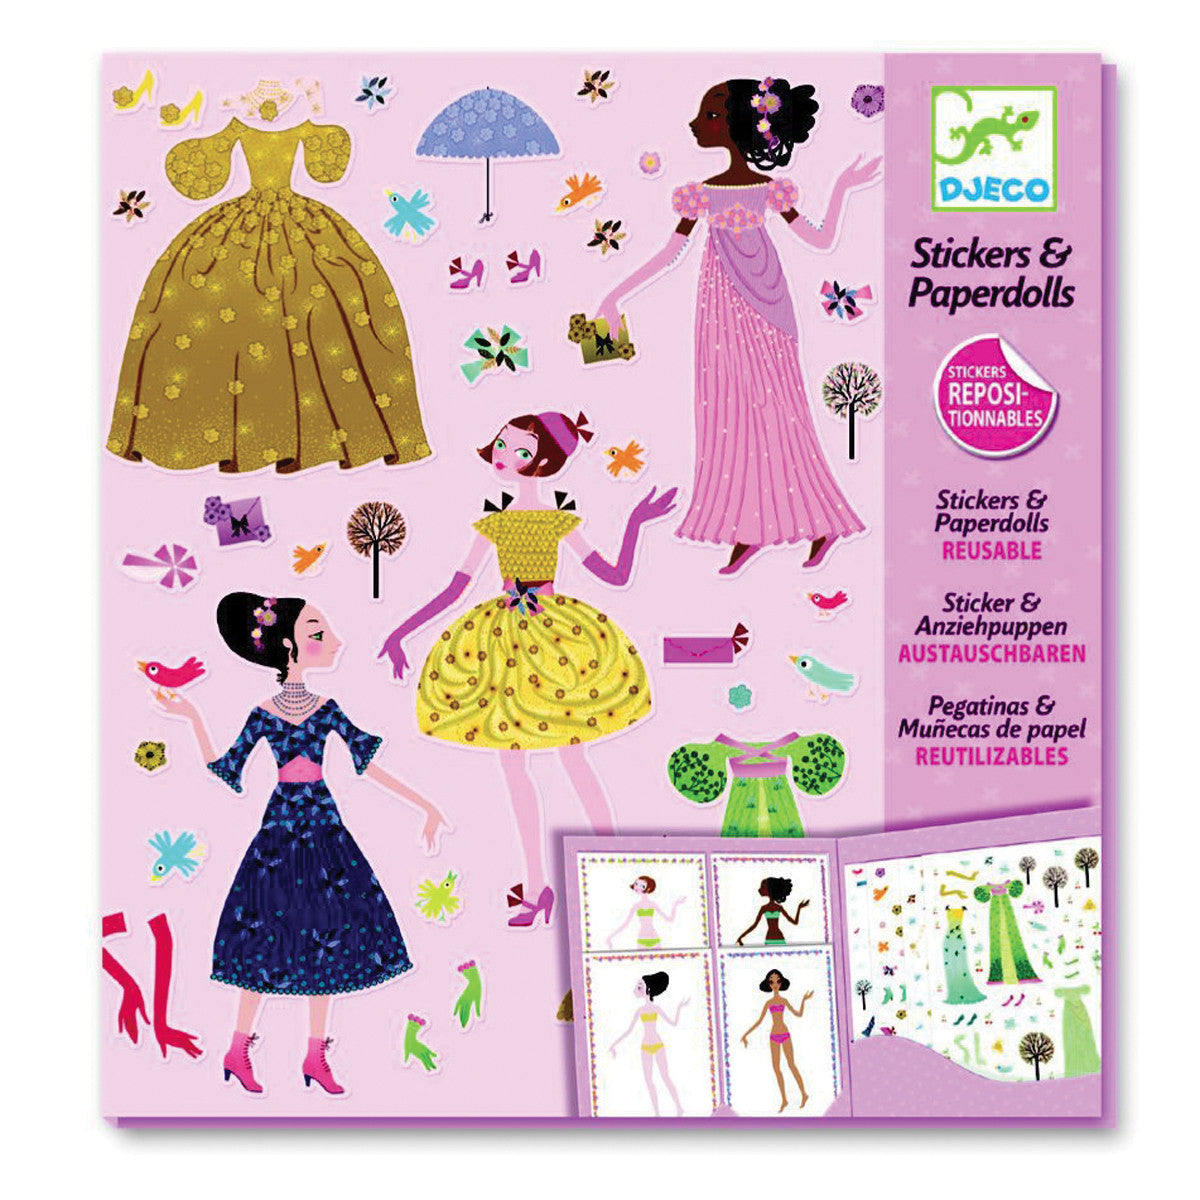 DJECO Stickers /& Paperdolls KNIGHTS Reusable Stick-on